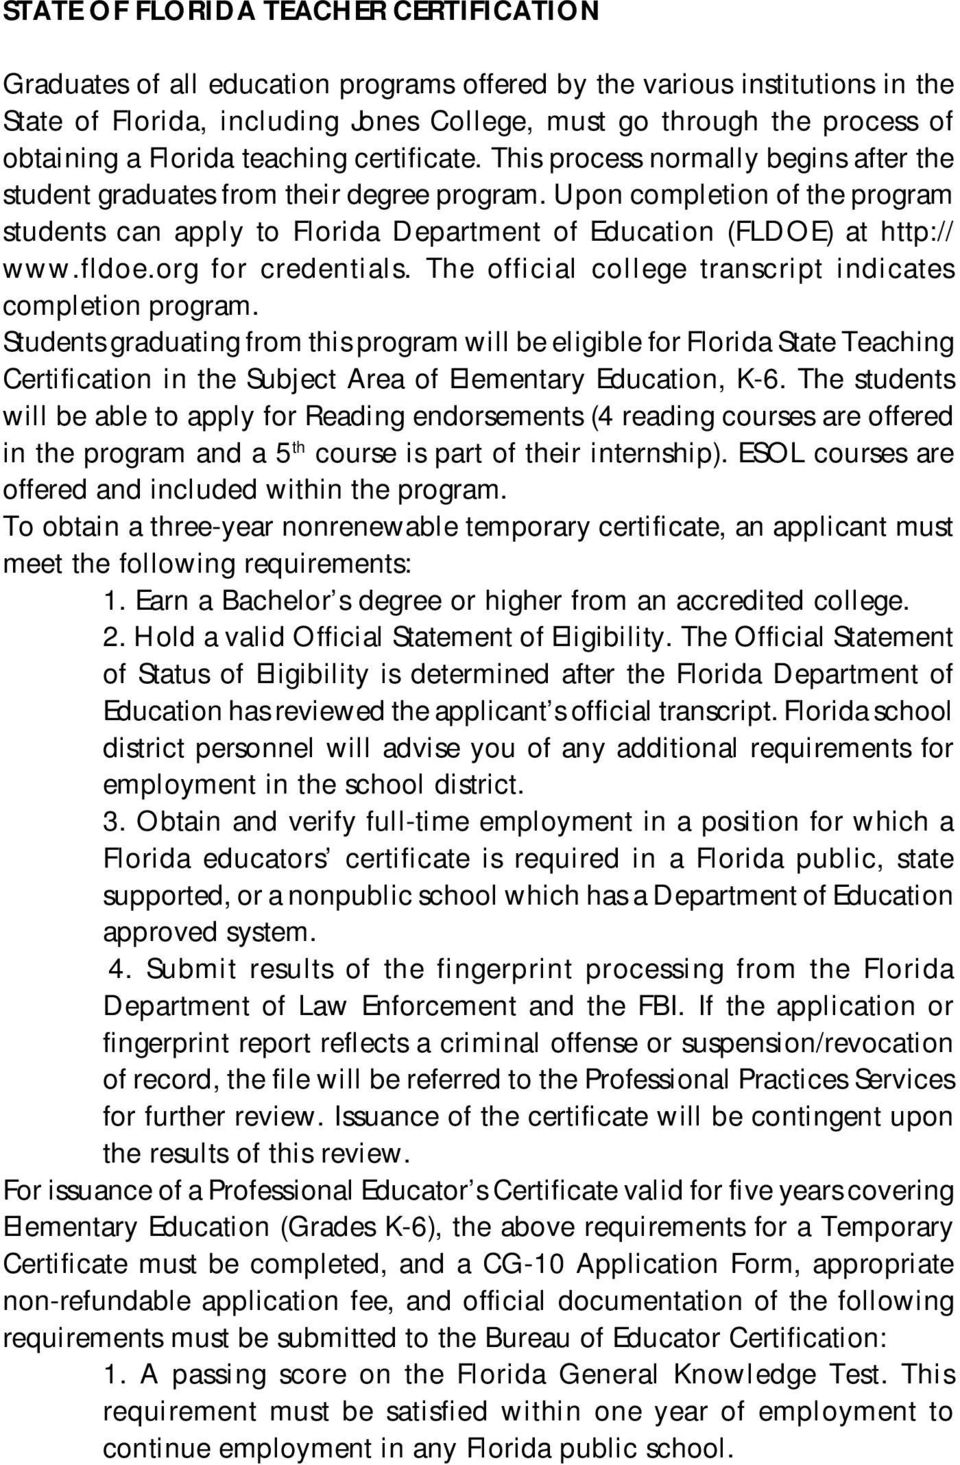 Upon completion of the program students can apply to Florida Department of Education (FLDOE) at http:// www.fldoe.org for credentials. The official college transcript indicates completion program.